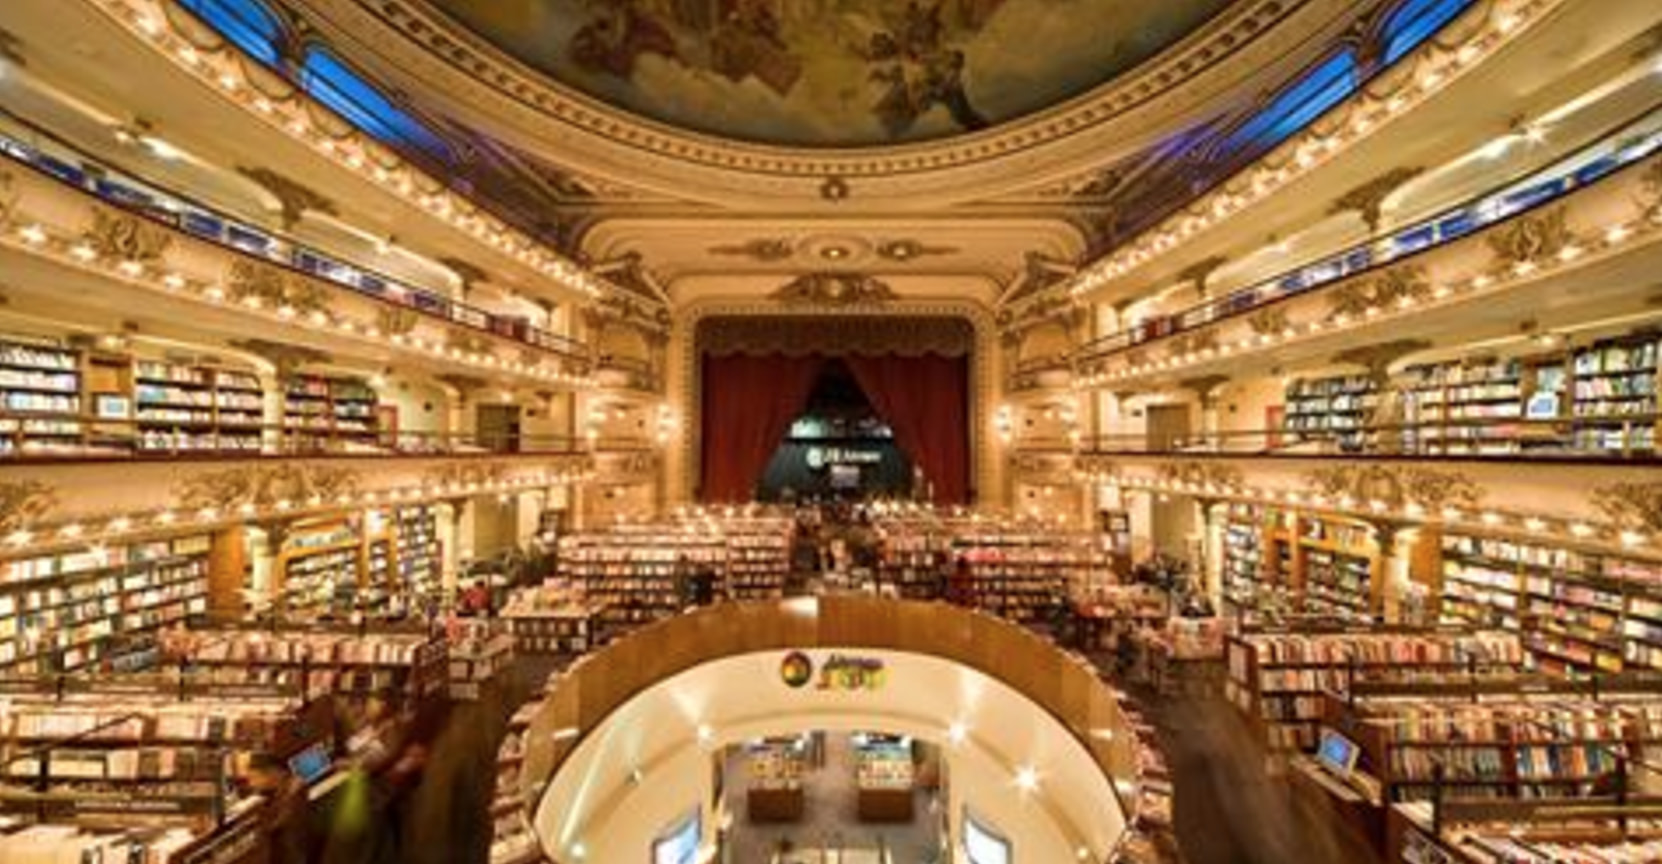 This 100-Year-Old Theater Is Now A Bookstore, And It's Magical AF